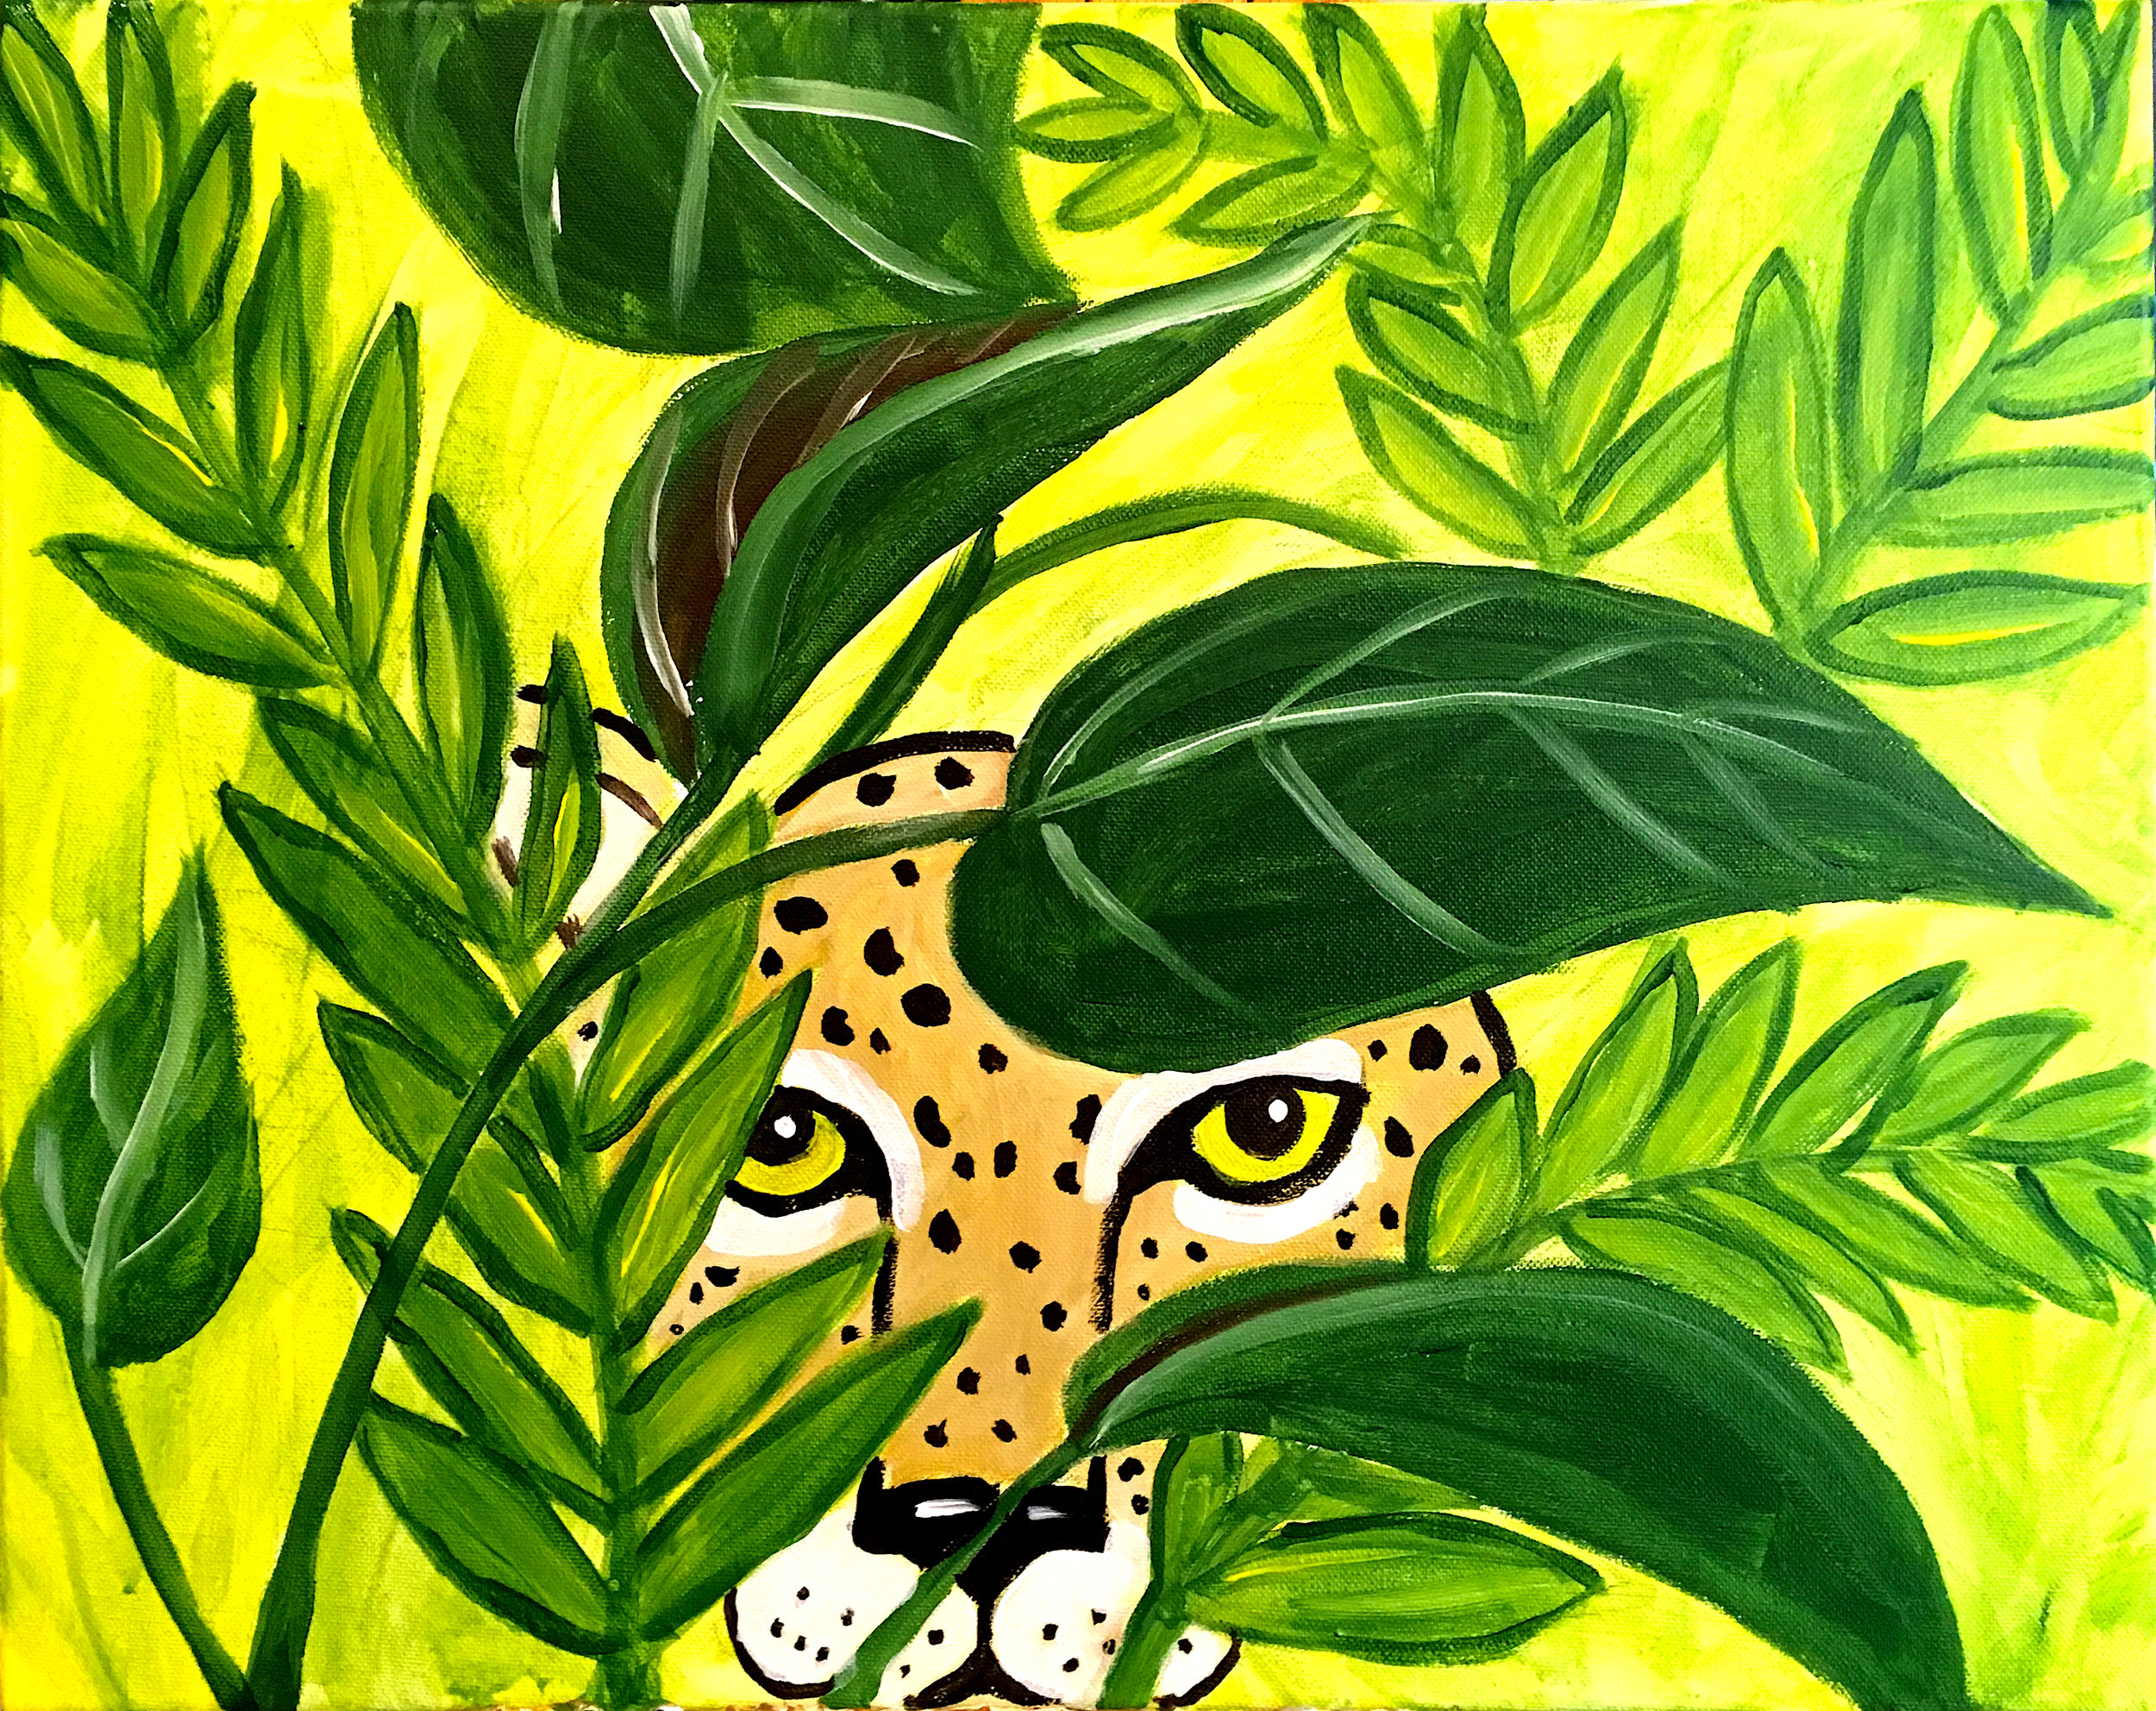 InTheJungle (Jacqueline Luttrell).jpg